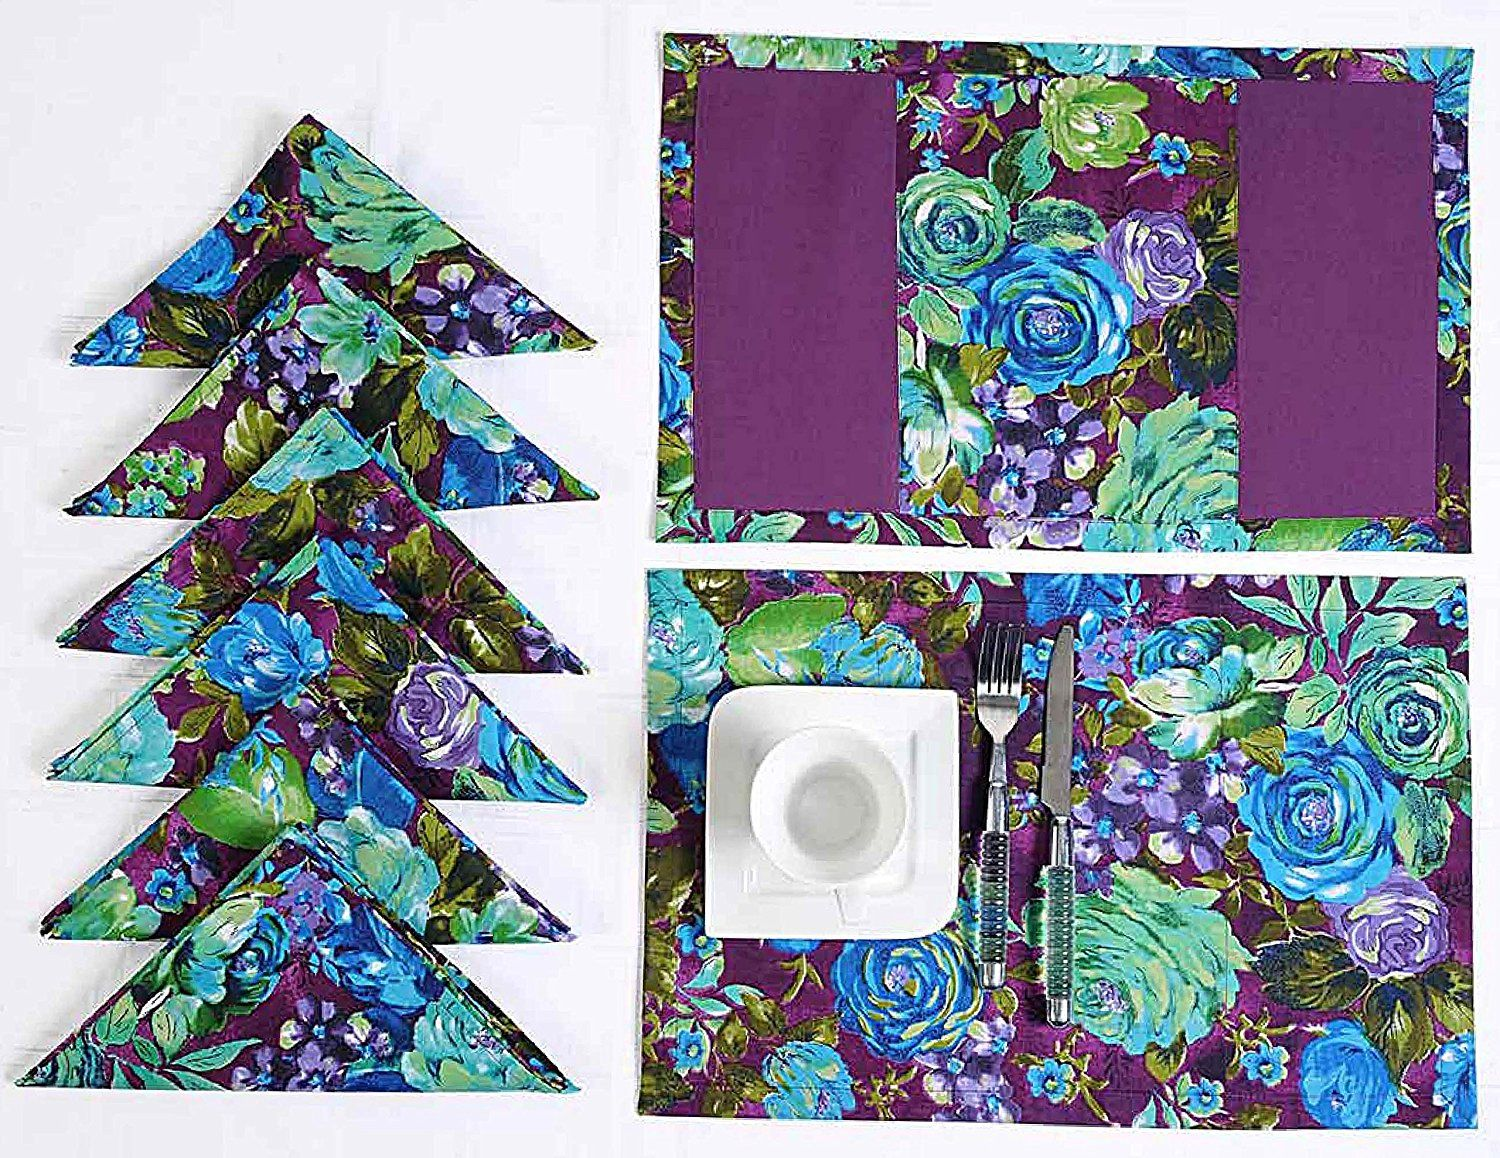 Luxury Napkin and Placemat Table Linens Set - Includes 6 Place Mats and 6 Napkins - Reversible ...